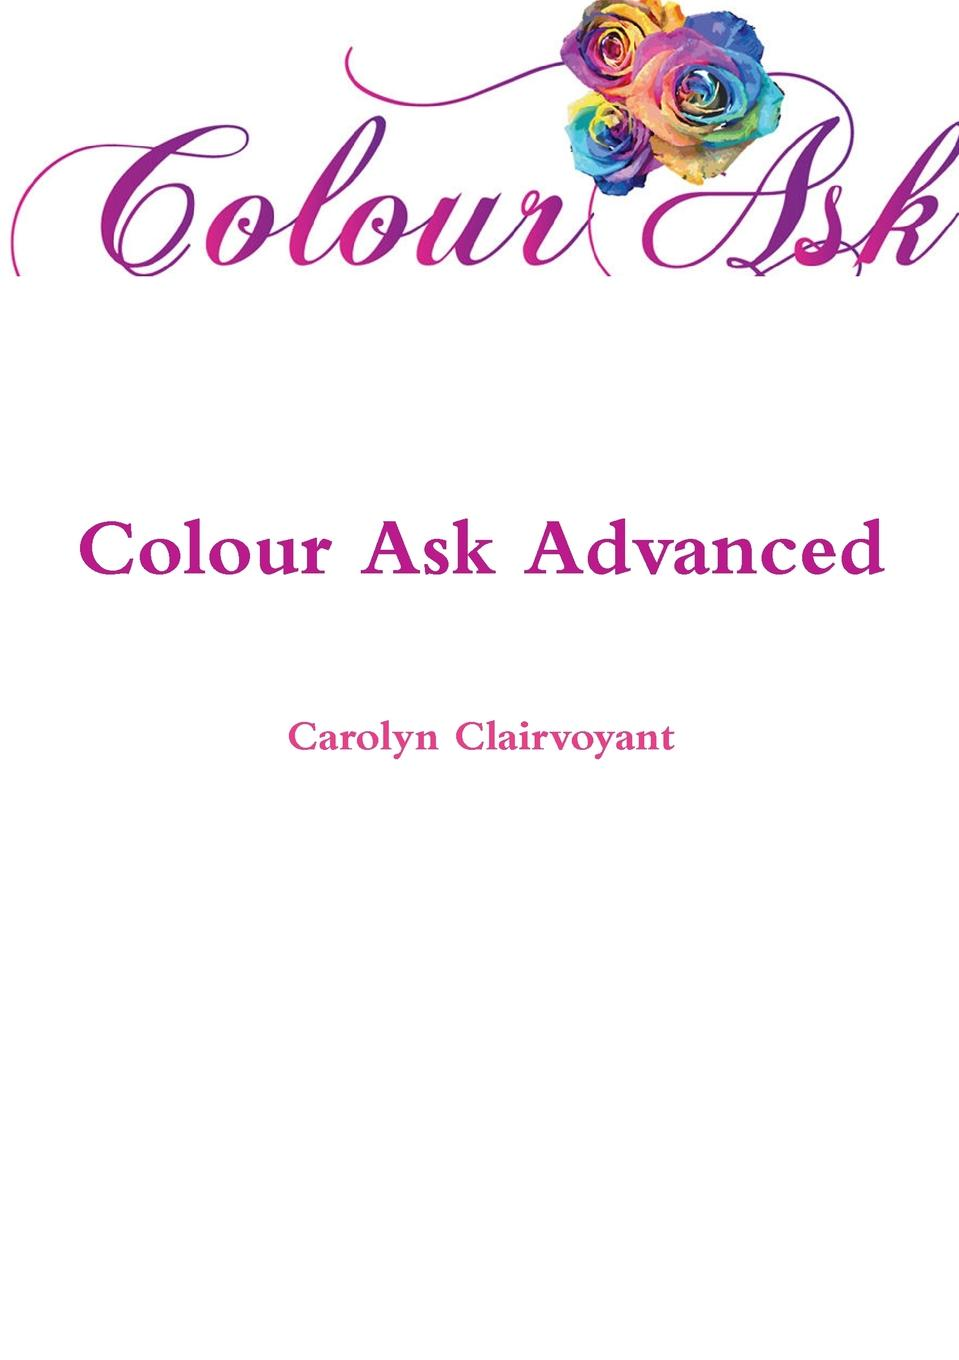 Carolyn Clairvoyant Colour Ask Advanced 20 christmas cards to colour